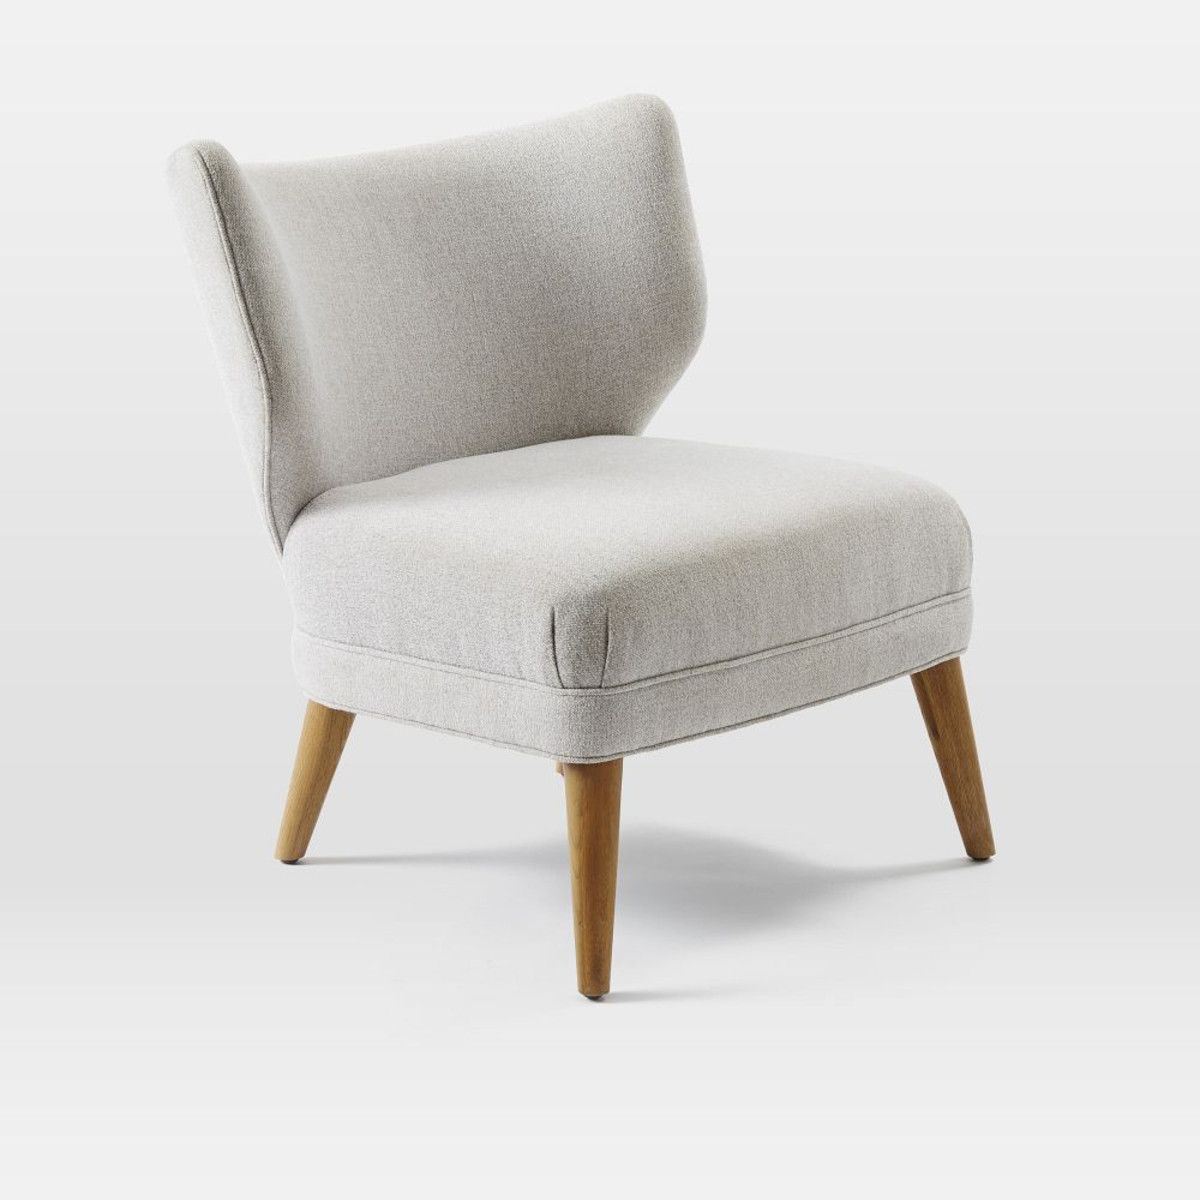 Retro Wing Chair West Elm Australia Small Chair For Bedroom